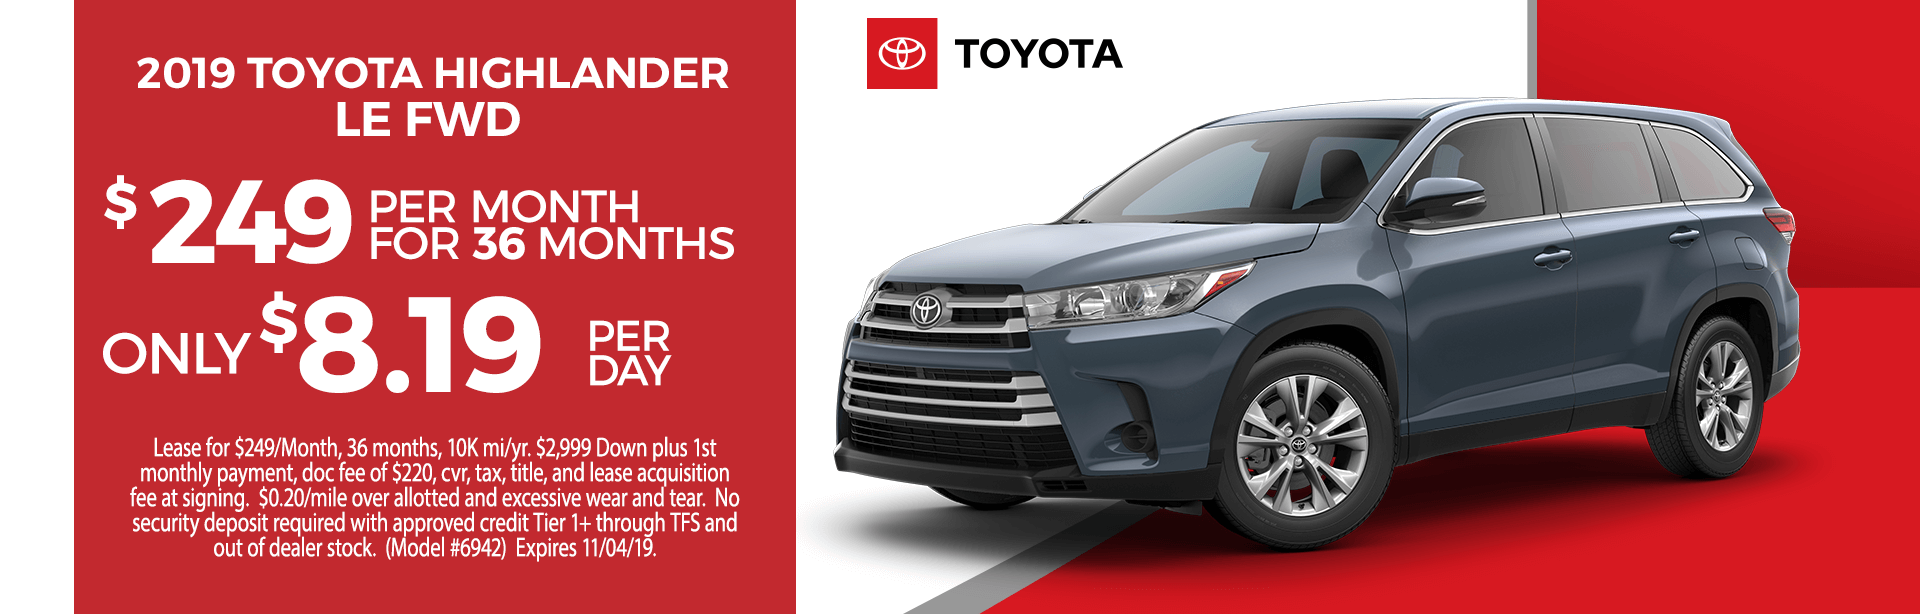 1920x614_Toyota_DealerInspire_Highlander_unique145